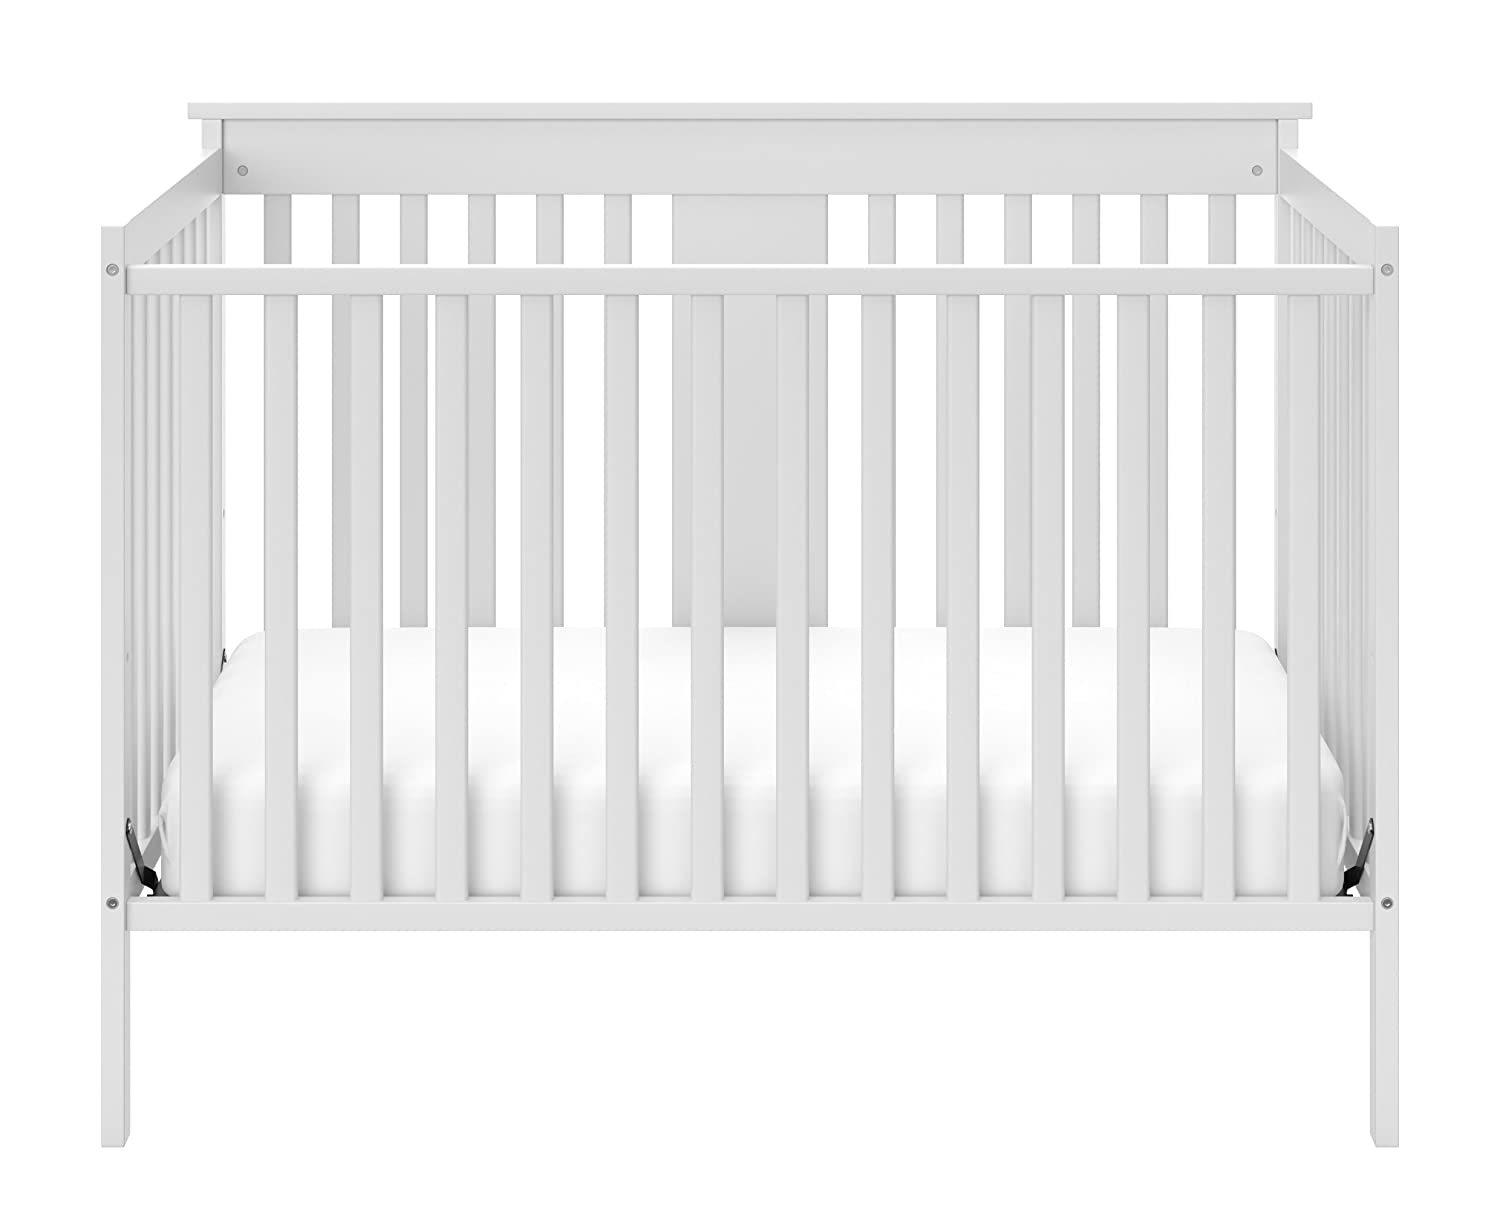 Storkcraft Mission Ridge Fixed Side Convertible Crib, Espresso, Fixed Side Crib, Solid Pine and Wood Product Construction, Converts to Toddler Bed Day Bed or Full Bed, (Mattress Not Included) Stork Craft 04510-359